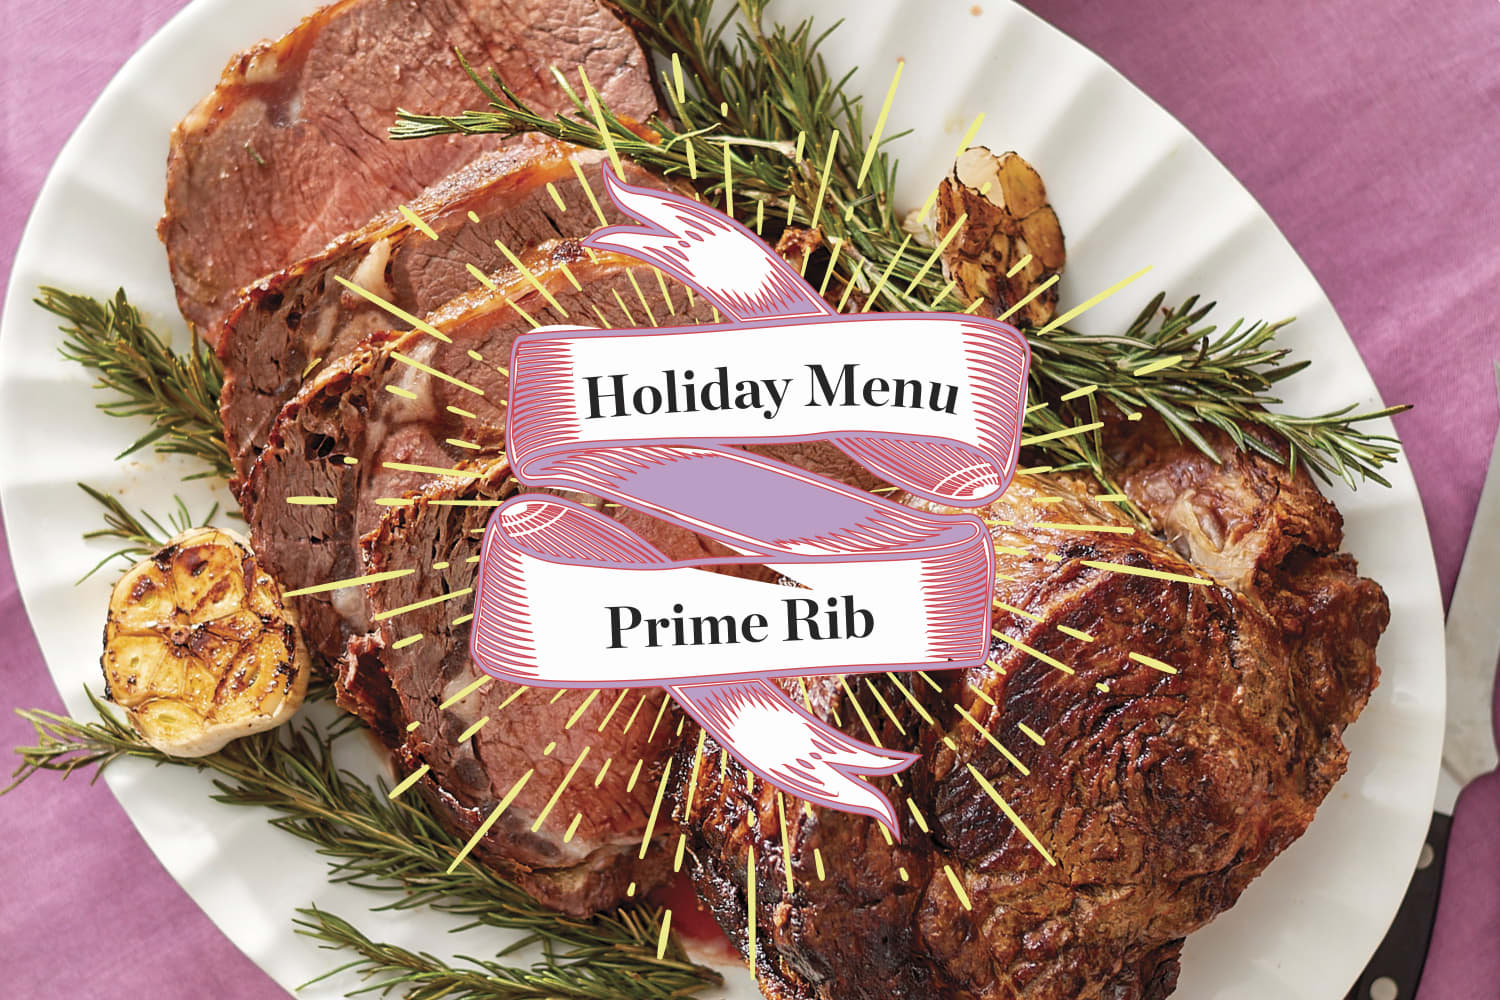 A Menu for a Prime Rib Holiday Dinner